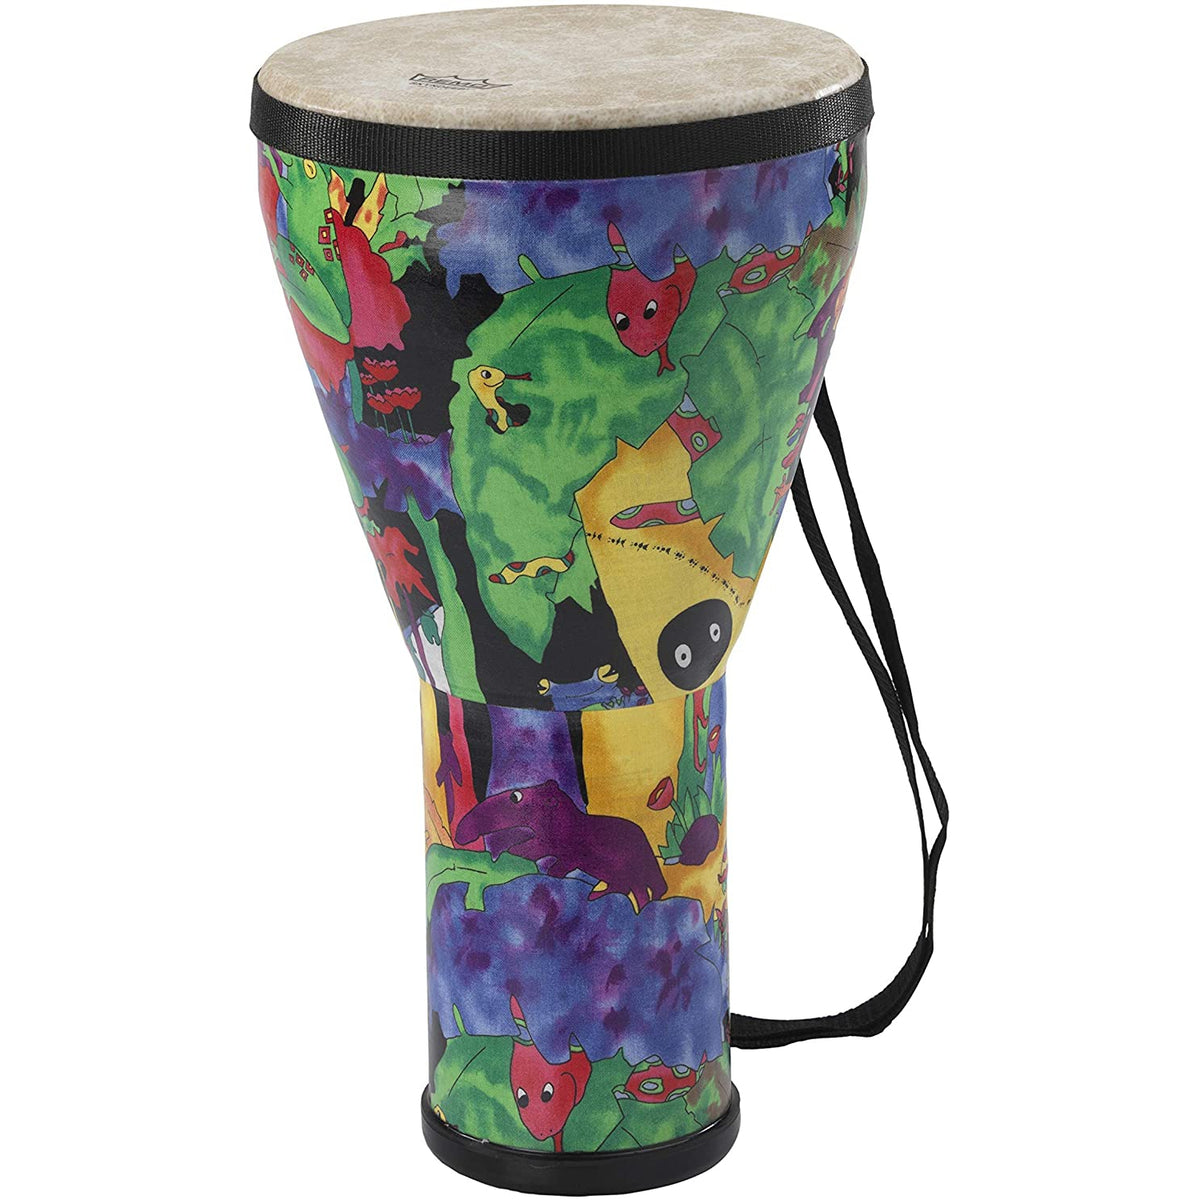 Remo KD-0608-01 KIDS PERCUSSION Djembe 8 Inch Rain Forest